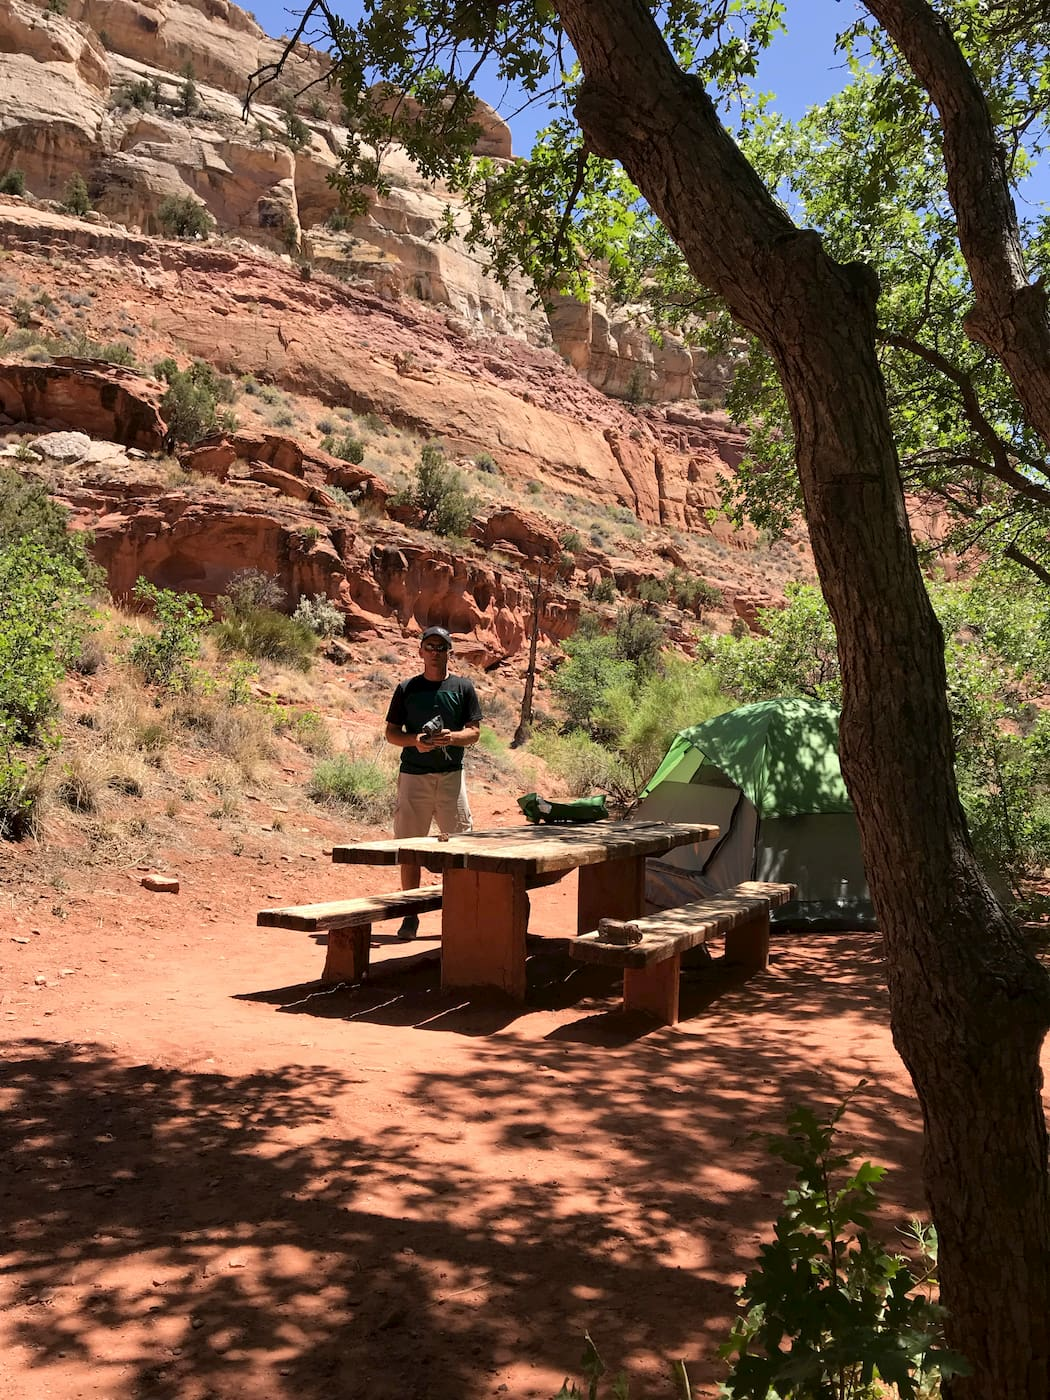 Picnic table and camper in Lower Calf Creek Campground.